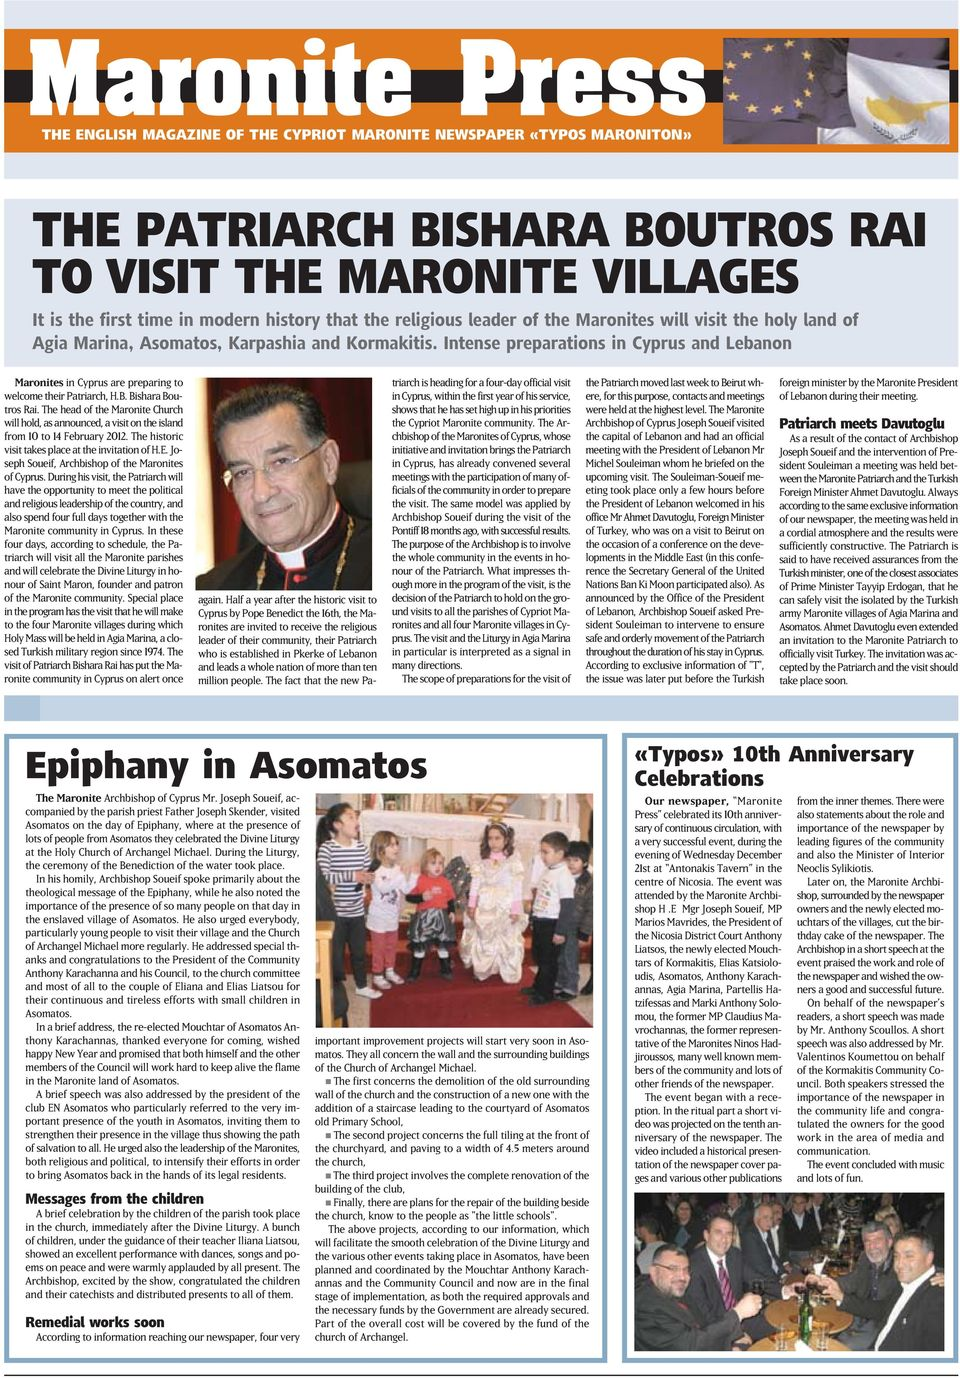 Intense preparations in Cyprus and Lebanon Maronites in Cyprus are preparing to welcome their Patriarch, H.B. Bishara Boutros Rai.